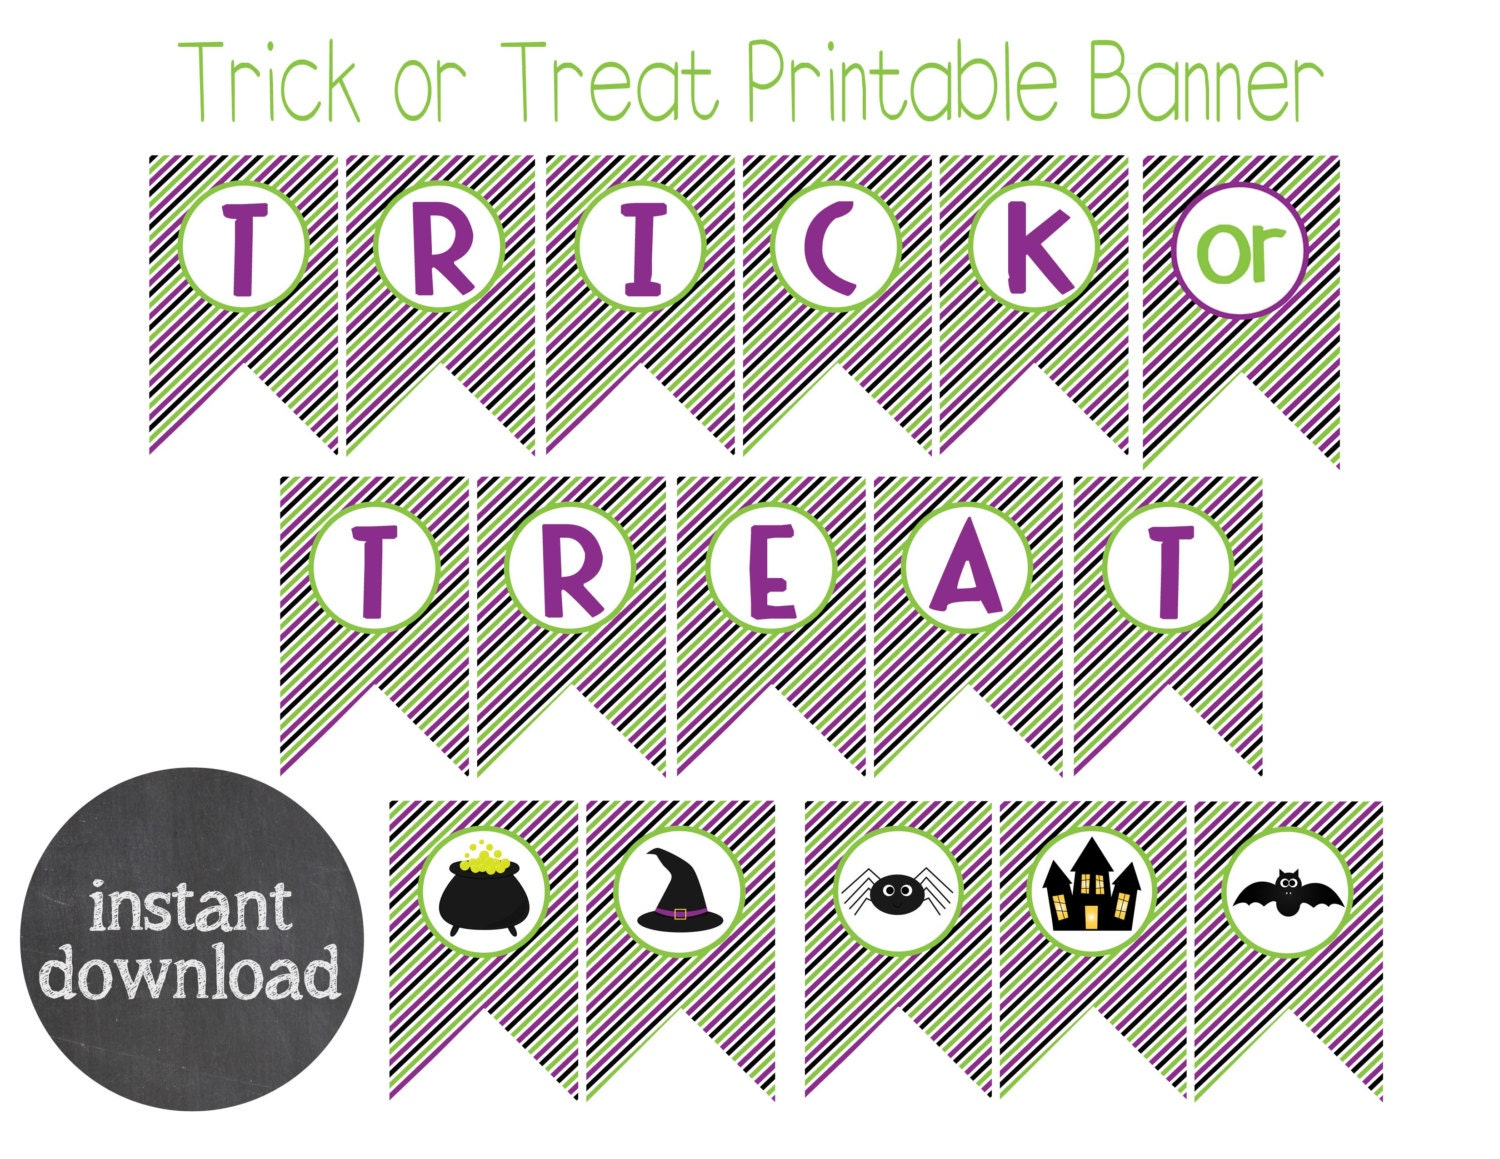 INSTANT DOWNLOAD Trick or Treat Printable Halloween Banner